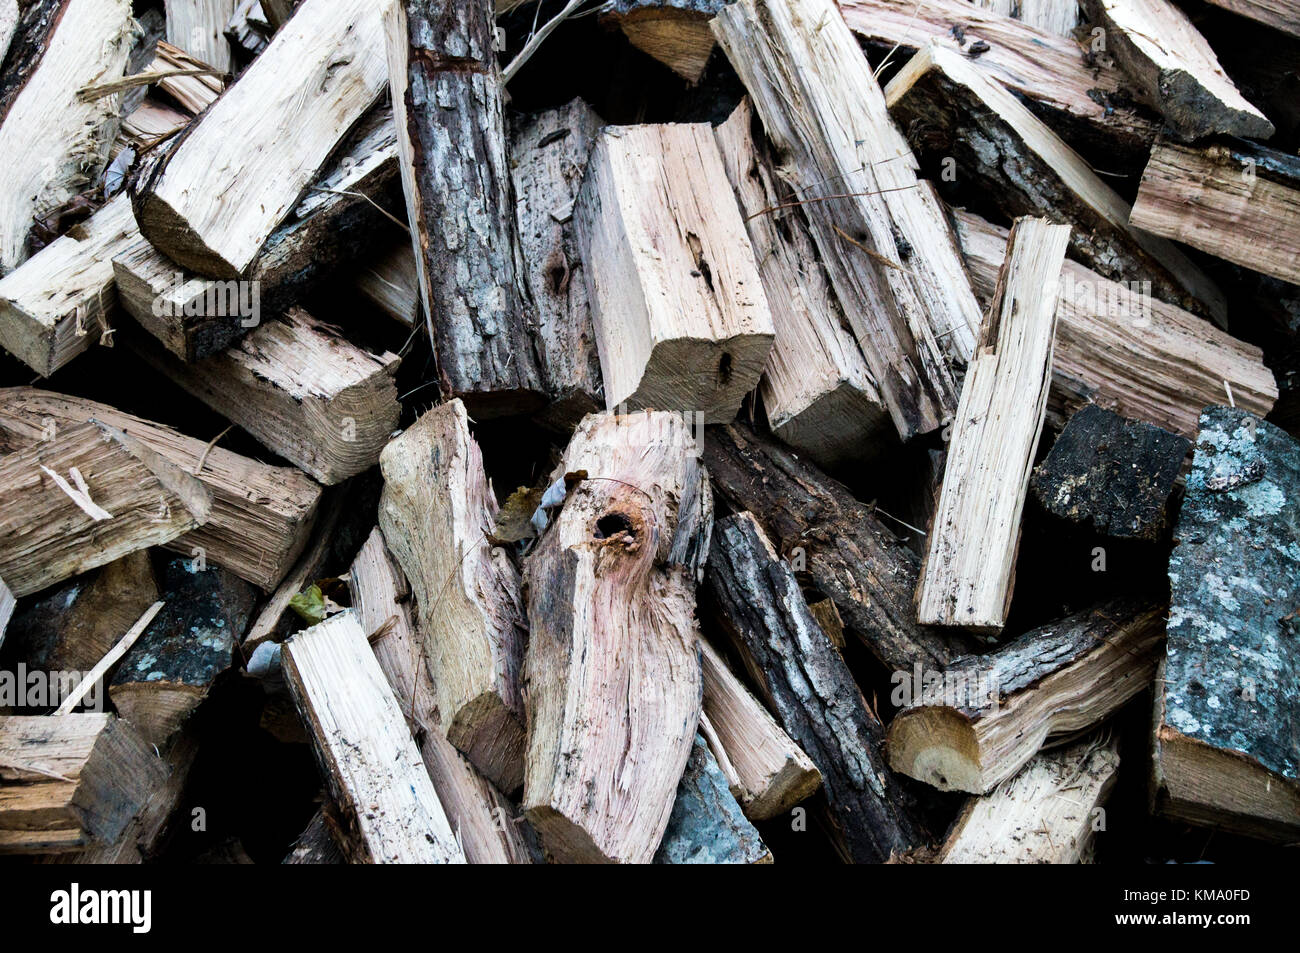 Pile of fire wood - Stock Image